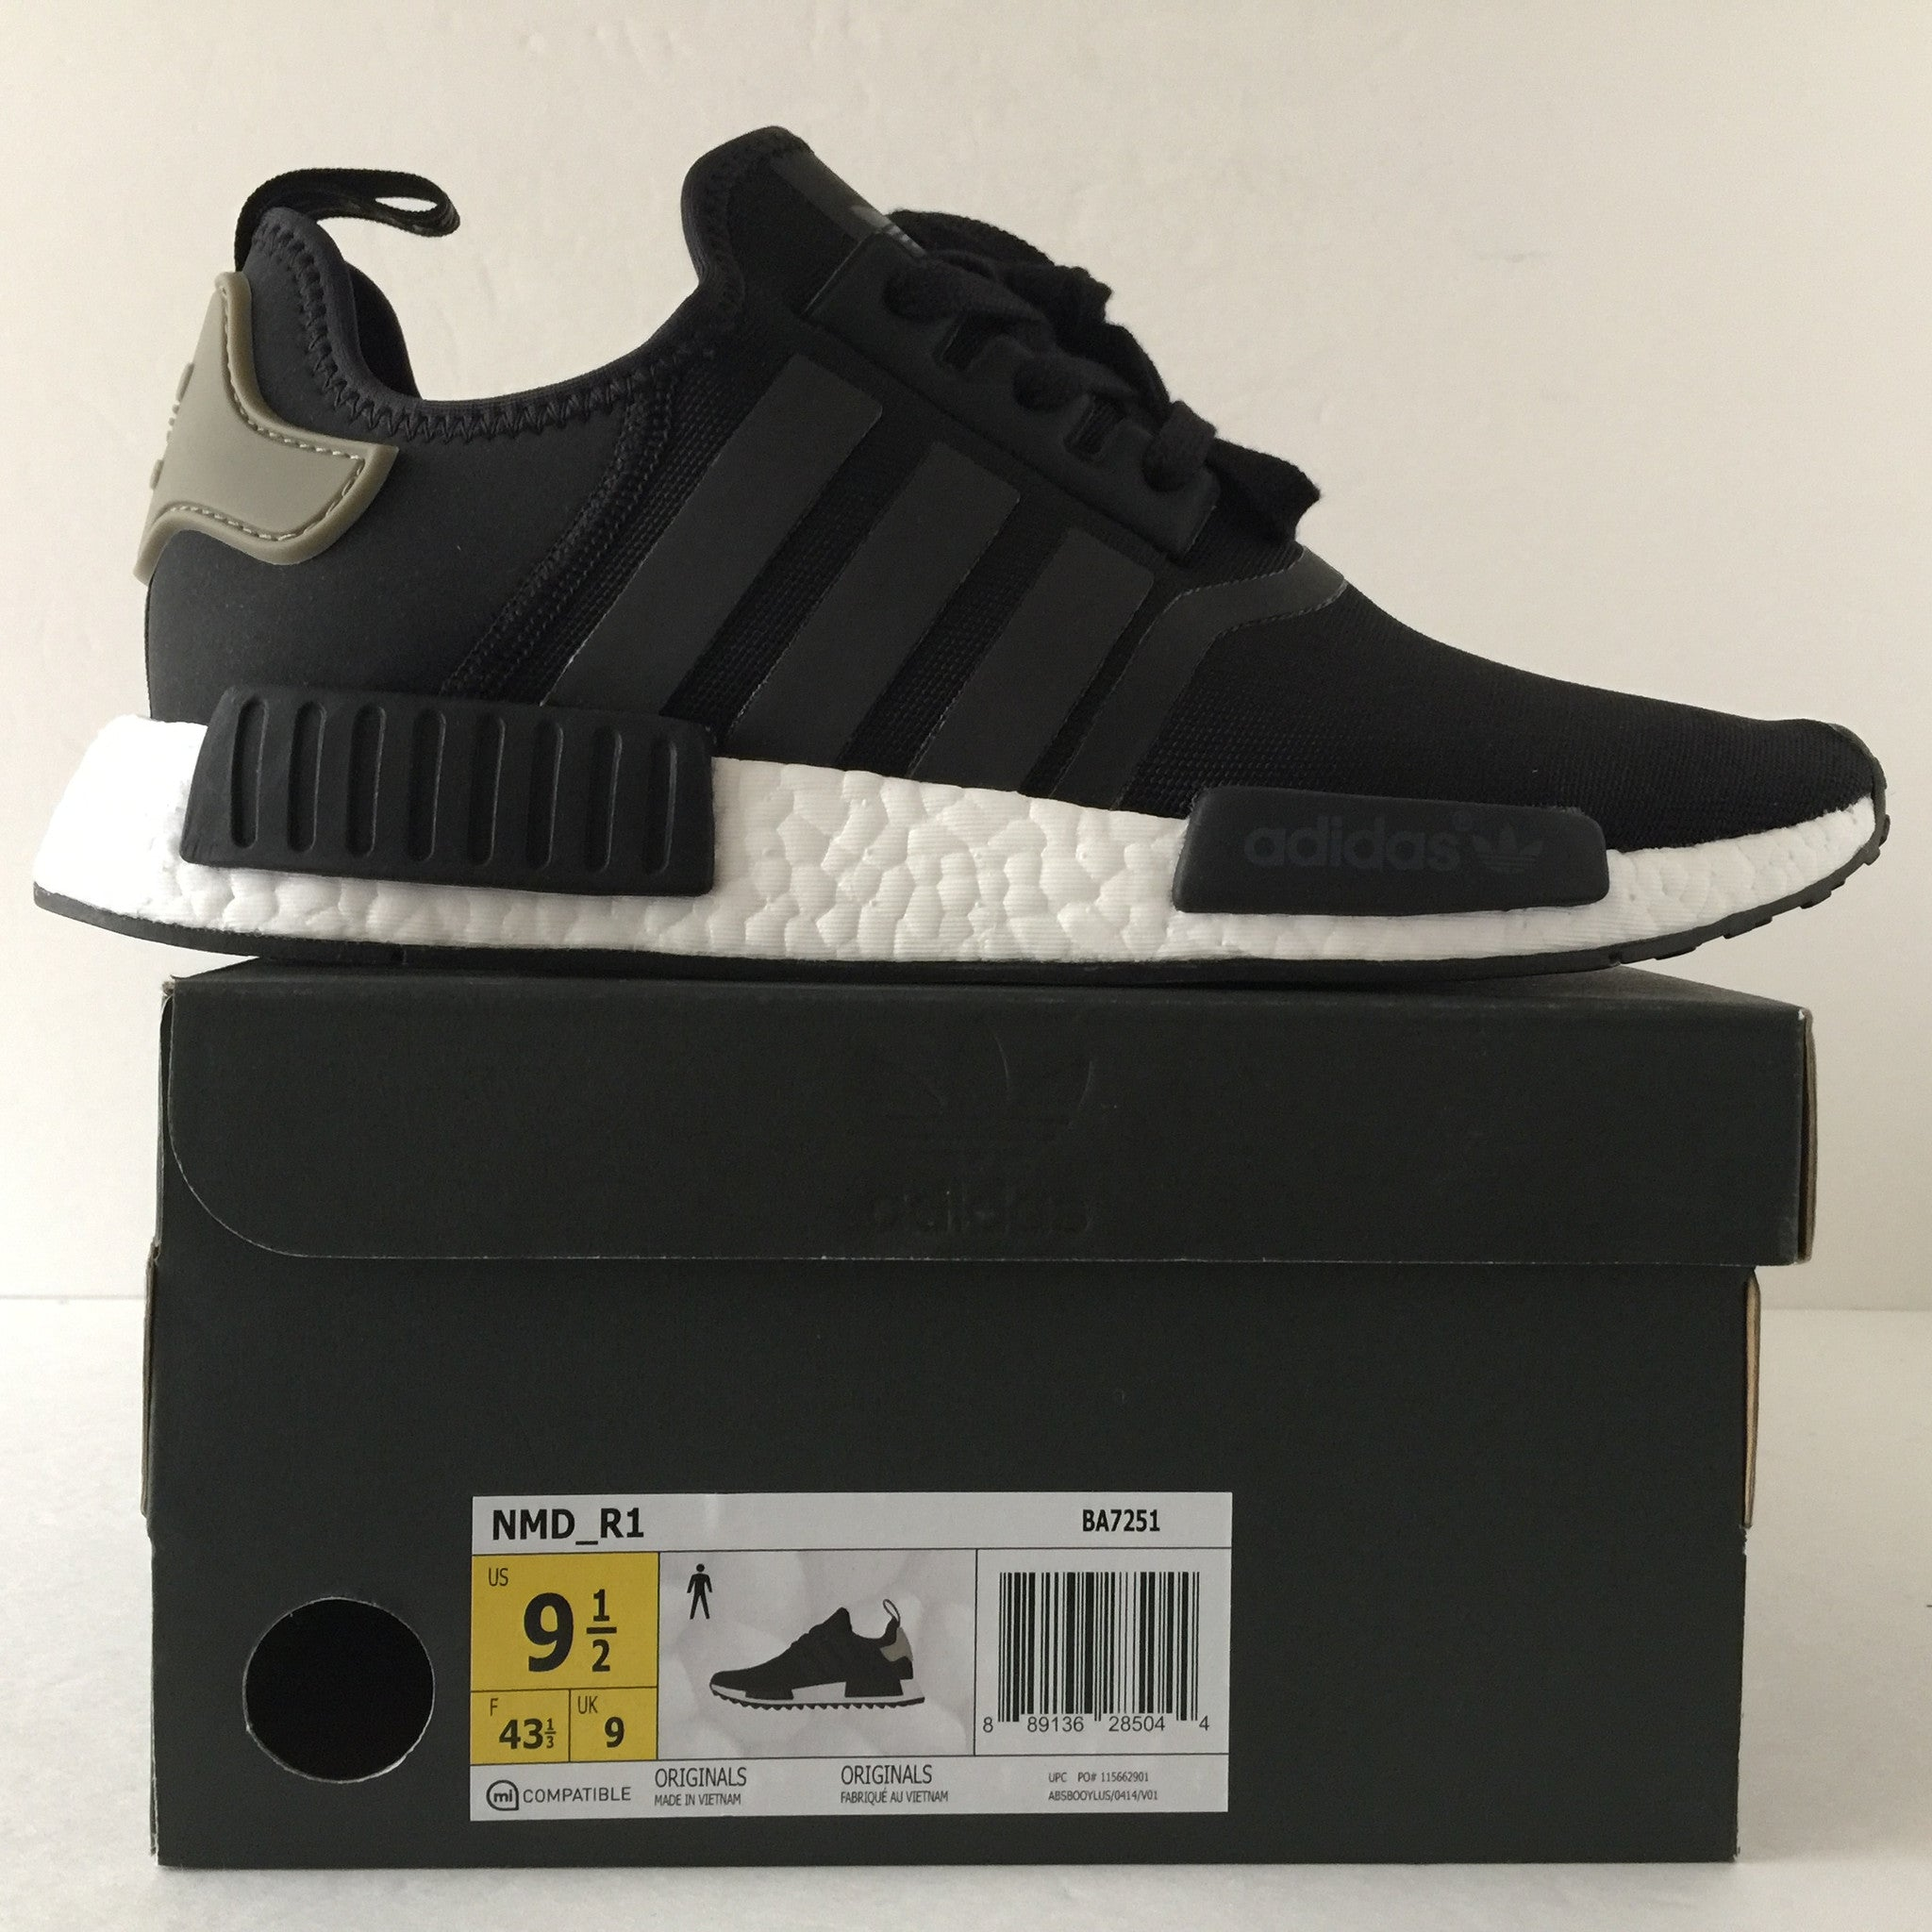 Adidas NMD R1 Trail W Shoes in Green Size US 5.5 EU 36 Le Portier